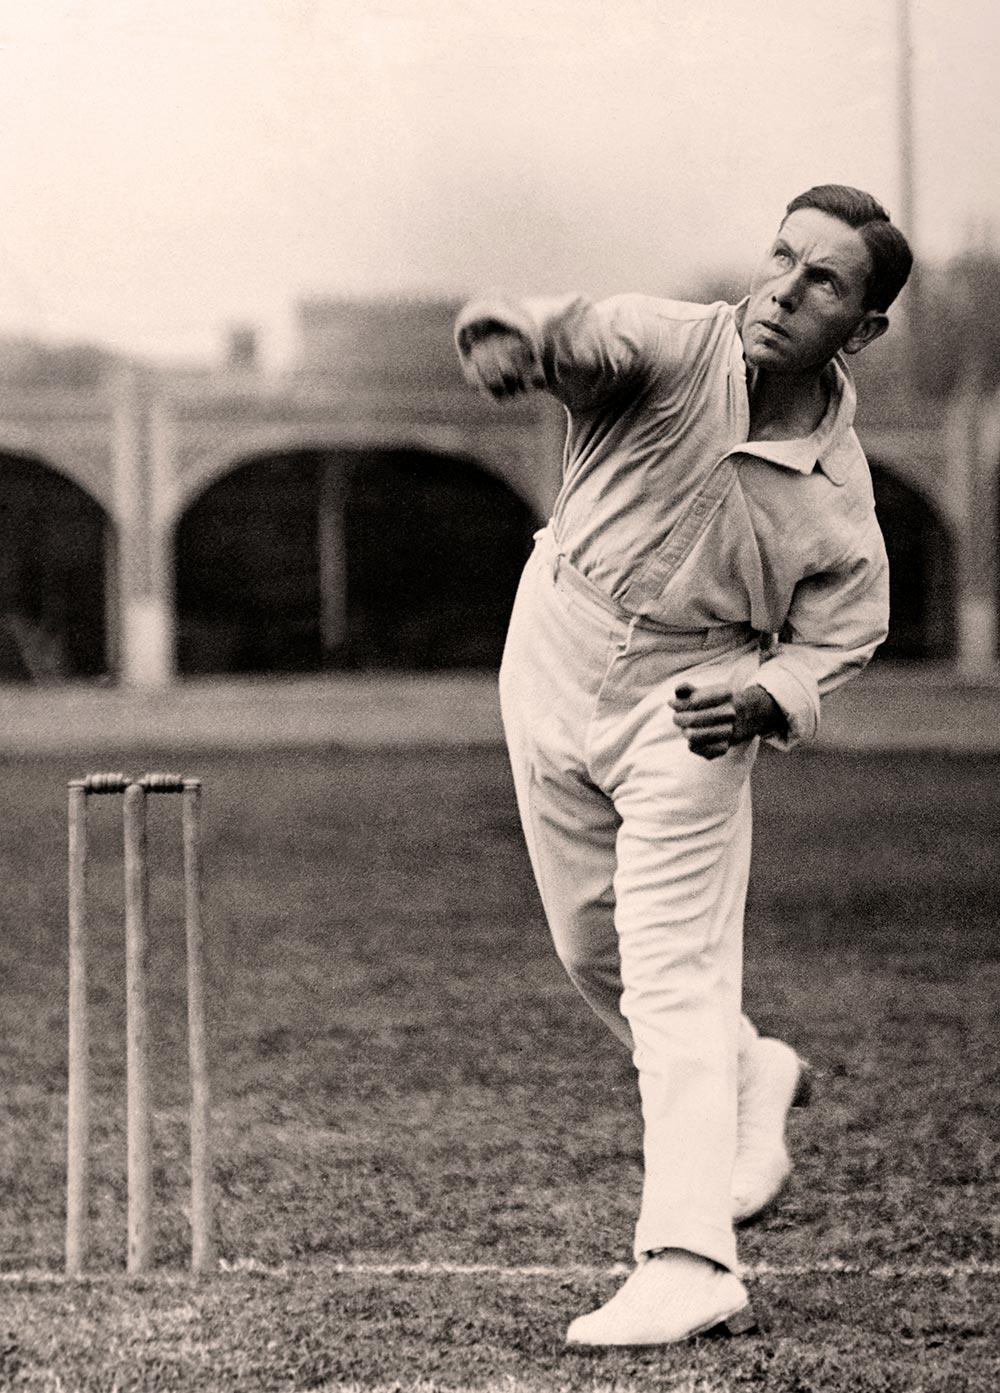 Arthur Mailey, bowling at training in England, 1926 // Getty